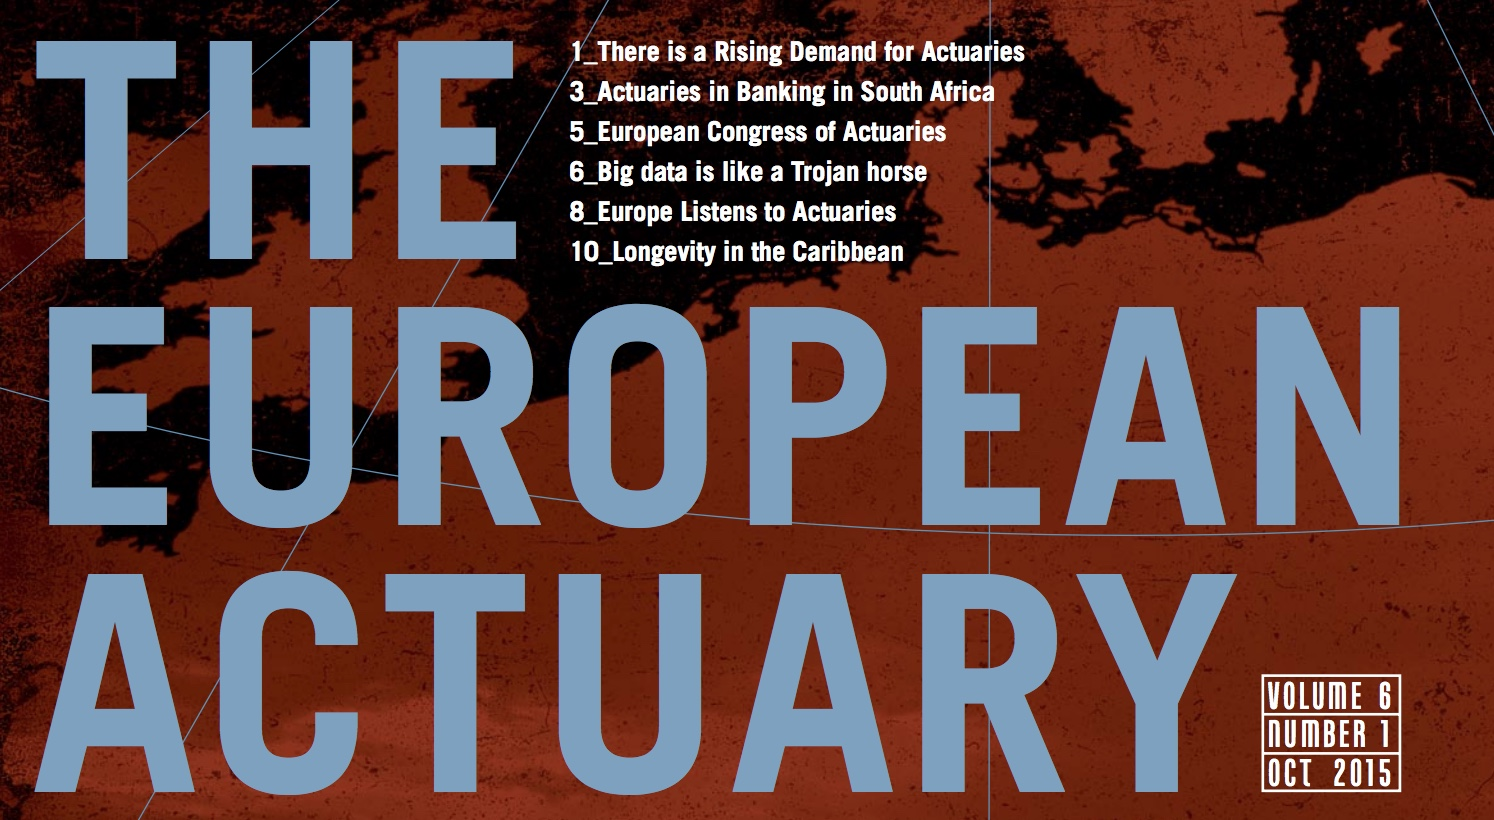 The European Actuary - Vol.6 Nr.1